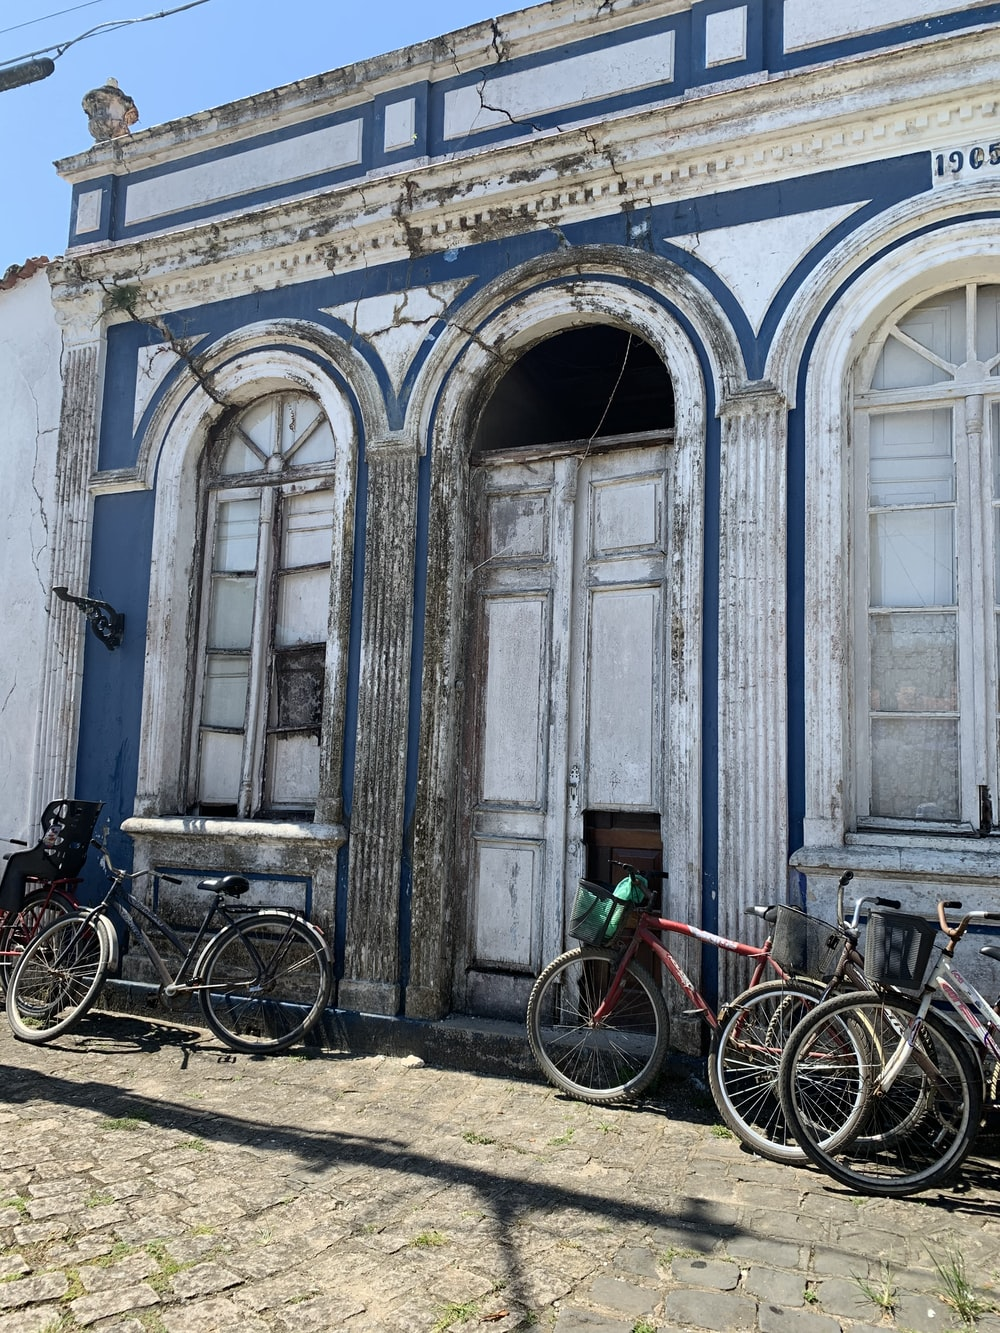 bicycles parked in front of blue concrete building